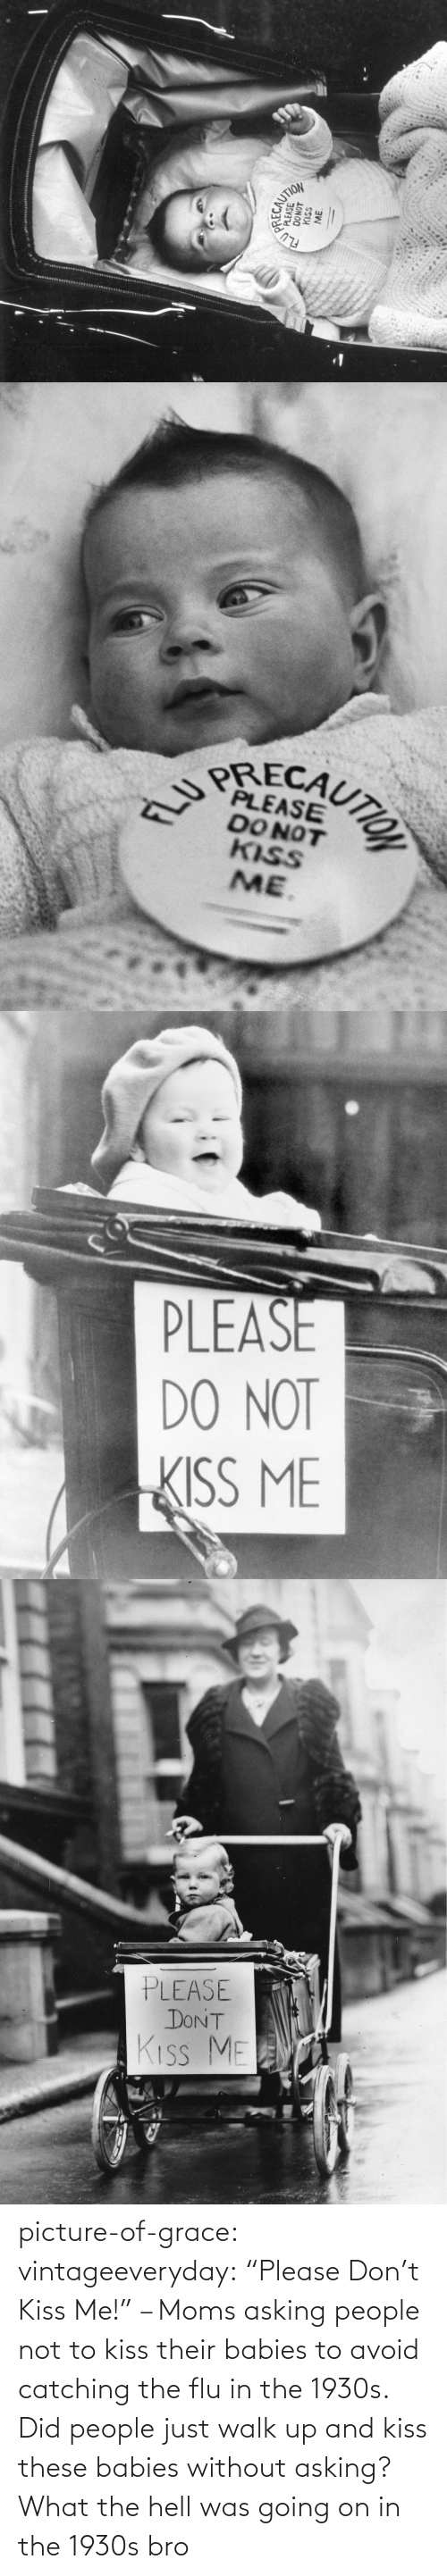 "just: picture-of-grace:  vintageeveryday: ""Please Don't Kiss Me!"" – Moms asking people not to kiss their babies to avoid catching the flu in the 1930s.   Did people just walk up and kiss these babies without asking? What the hell was going on in the 1930s bro"